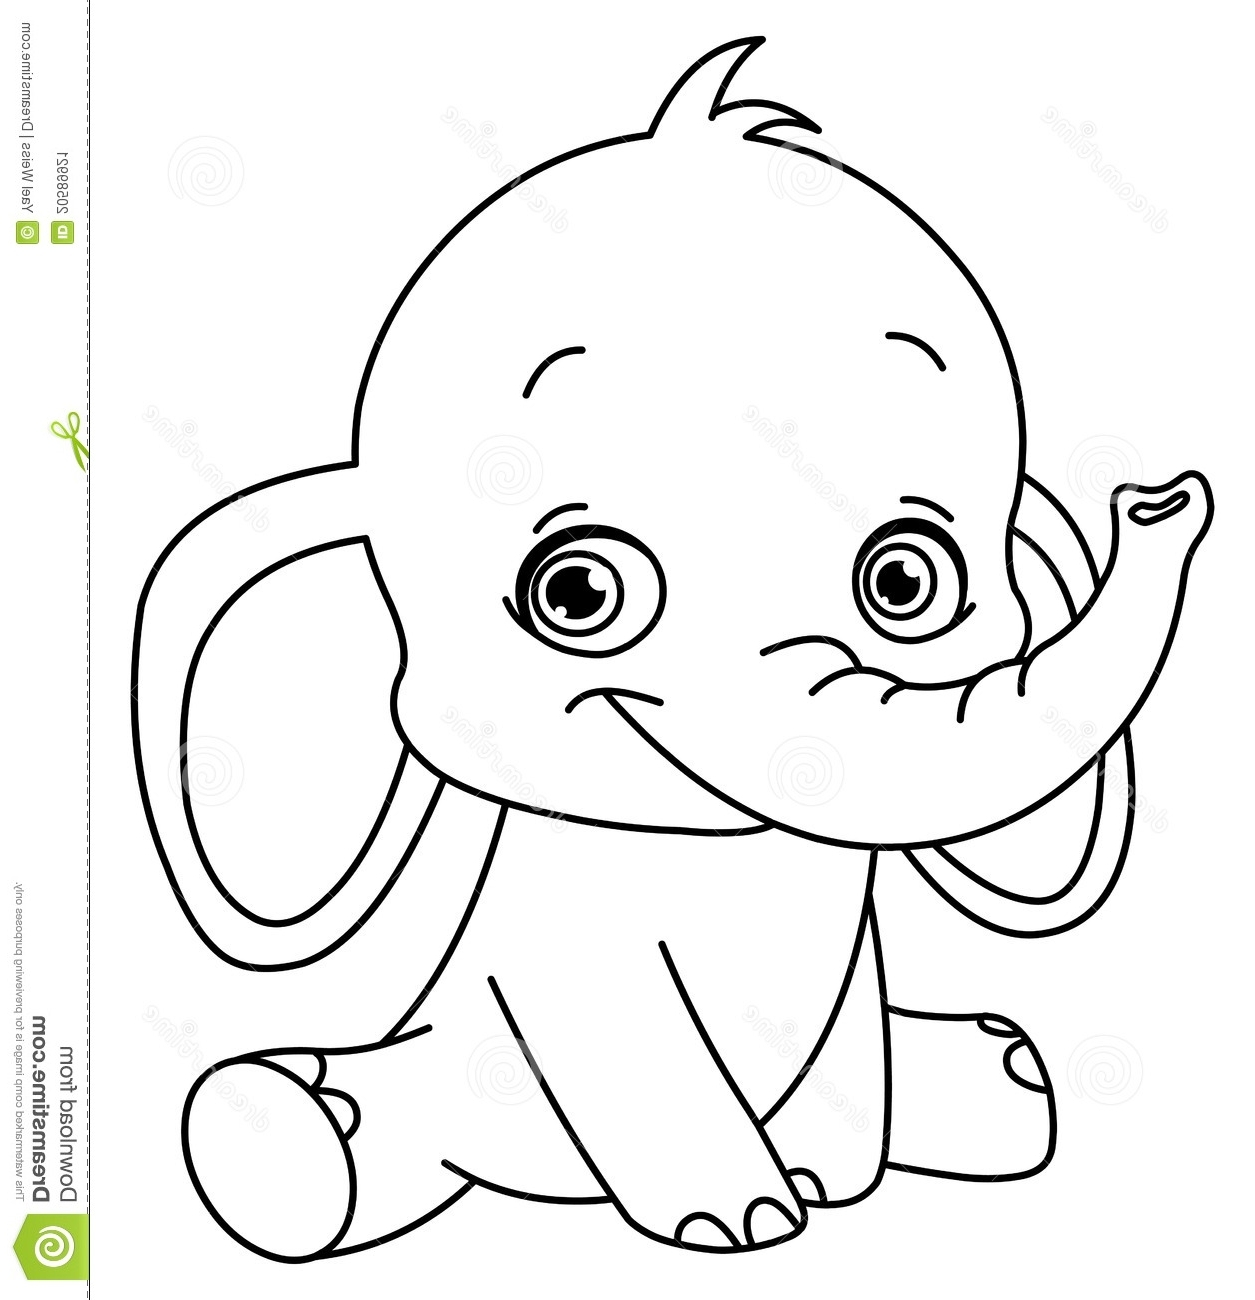 adorable baby elephant coloring pages elephant baby drawing at getdrawings free download baby pages elephant coloring adorable